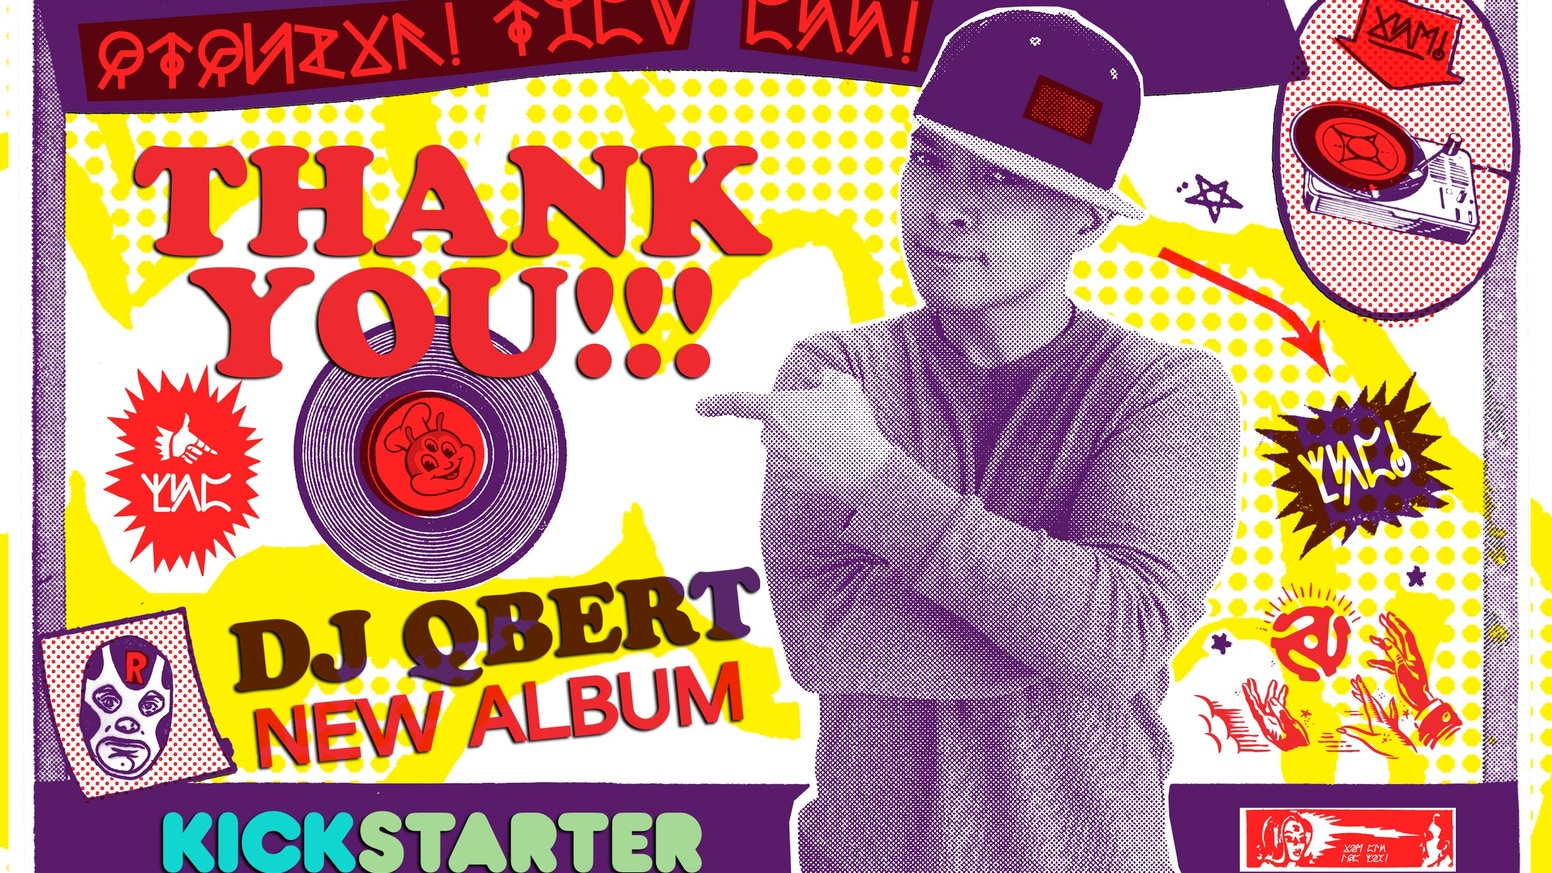 DJ QBert's new album is the time capsule response and interstellar transmission to any galactic civilization, alien or far-future human